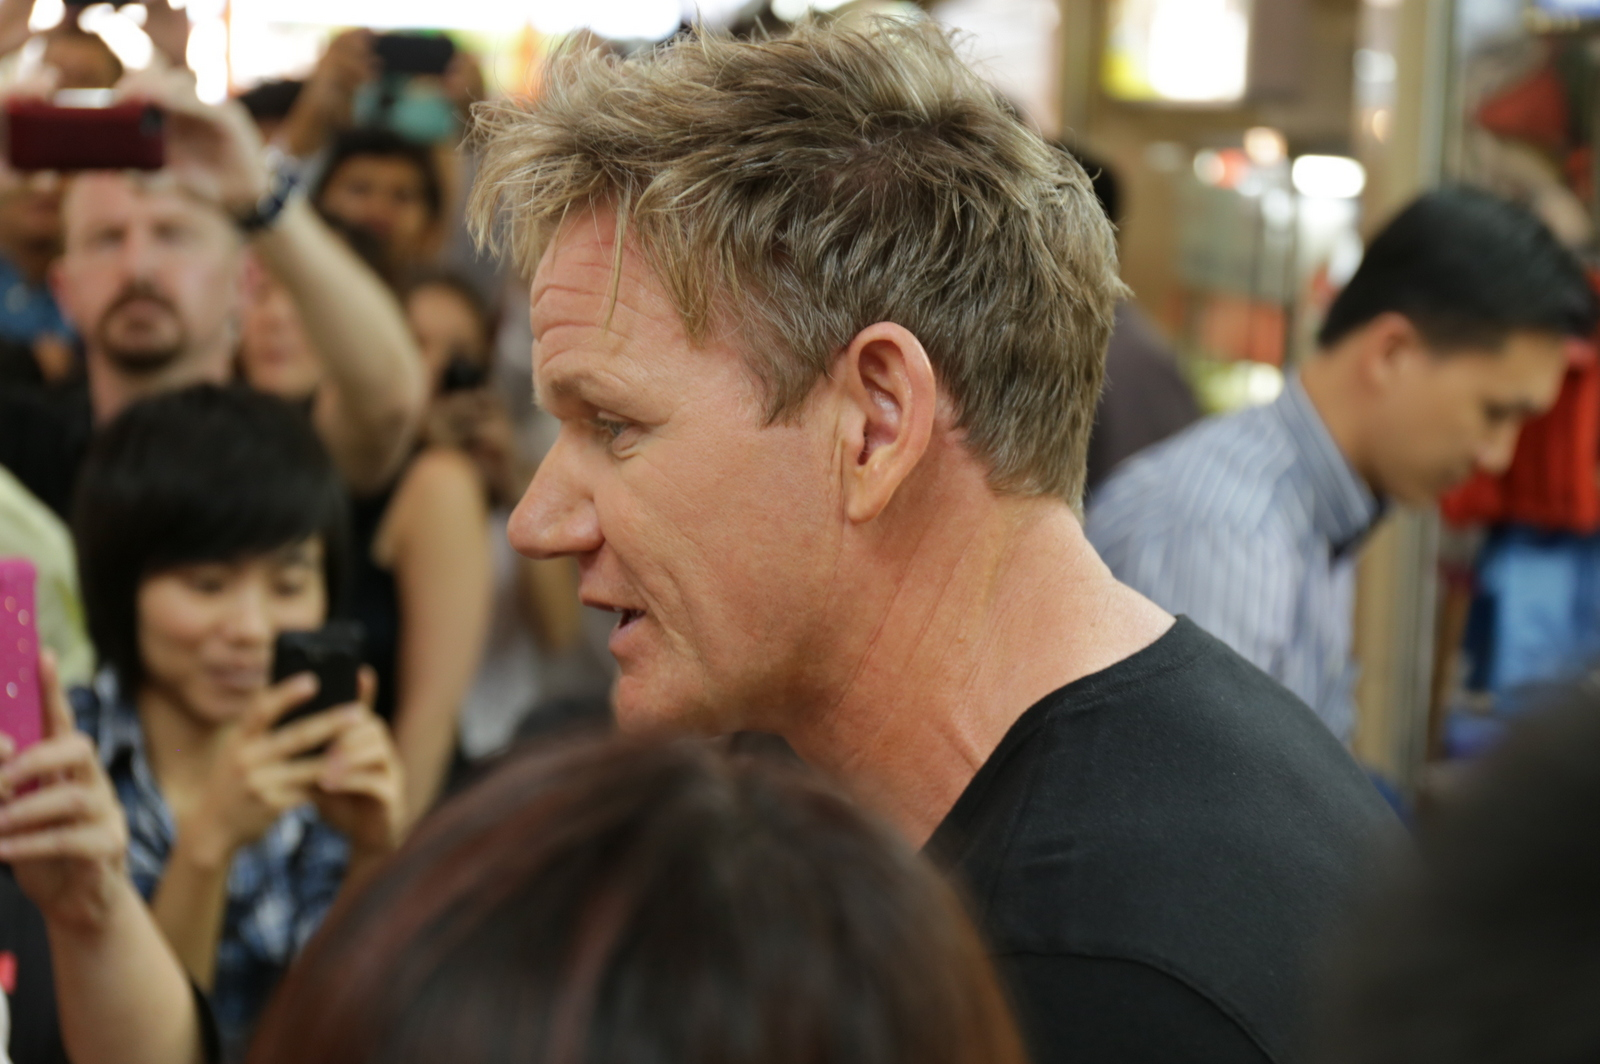 Gordon ramsay in singapore for singtel hawker heroes challenge day daniel ang daniels food diary leslie tay ieatishootipost philip lim keropokman and rayner ng hisfoodblog asked chef ramsay to come and pit m4hsunfo